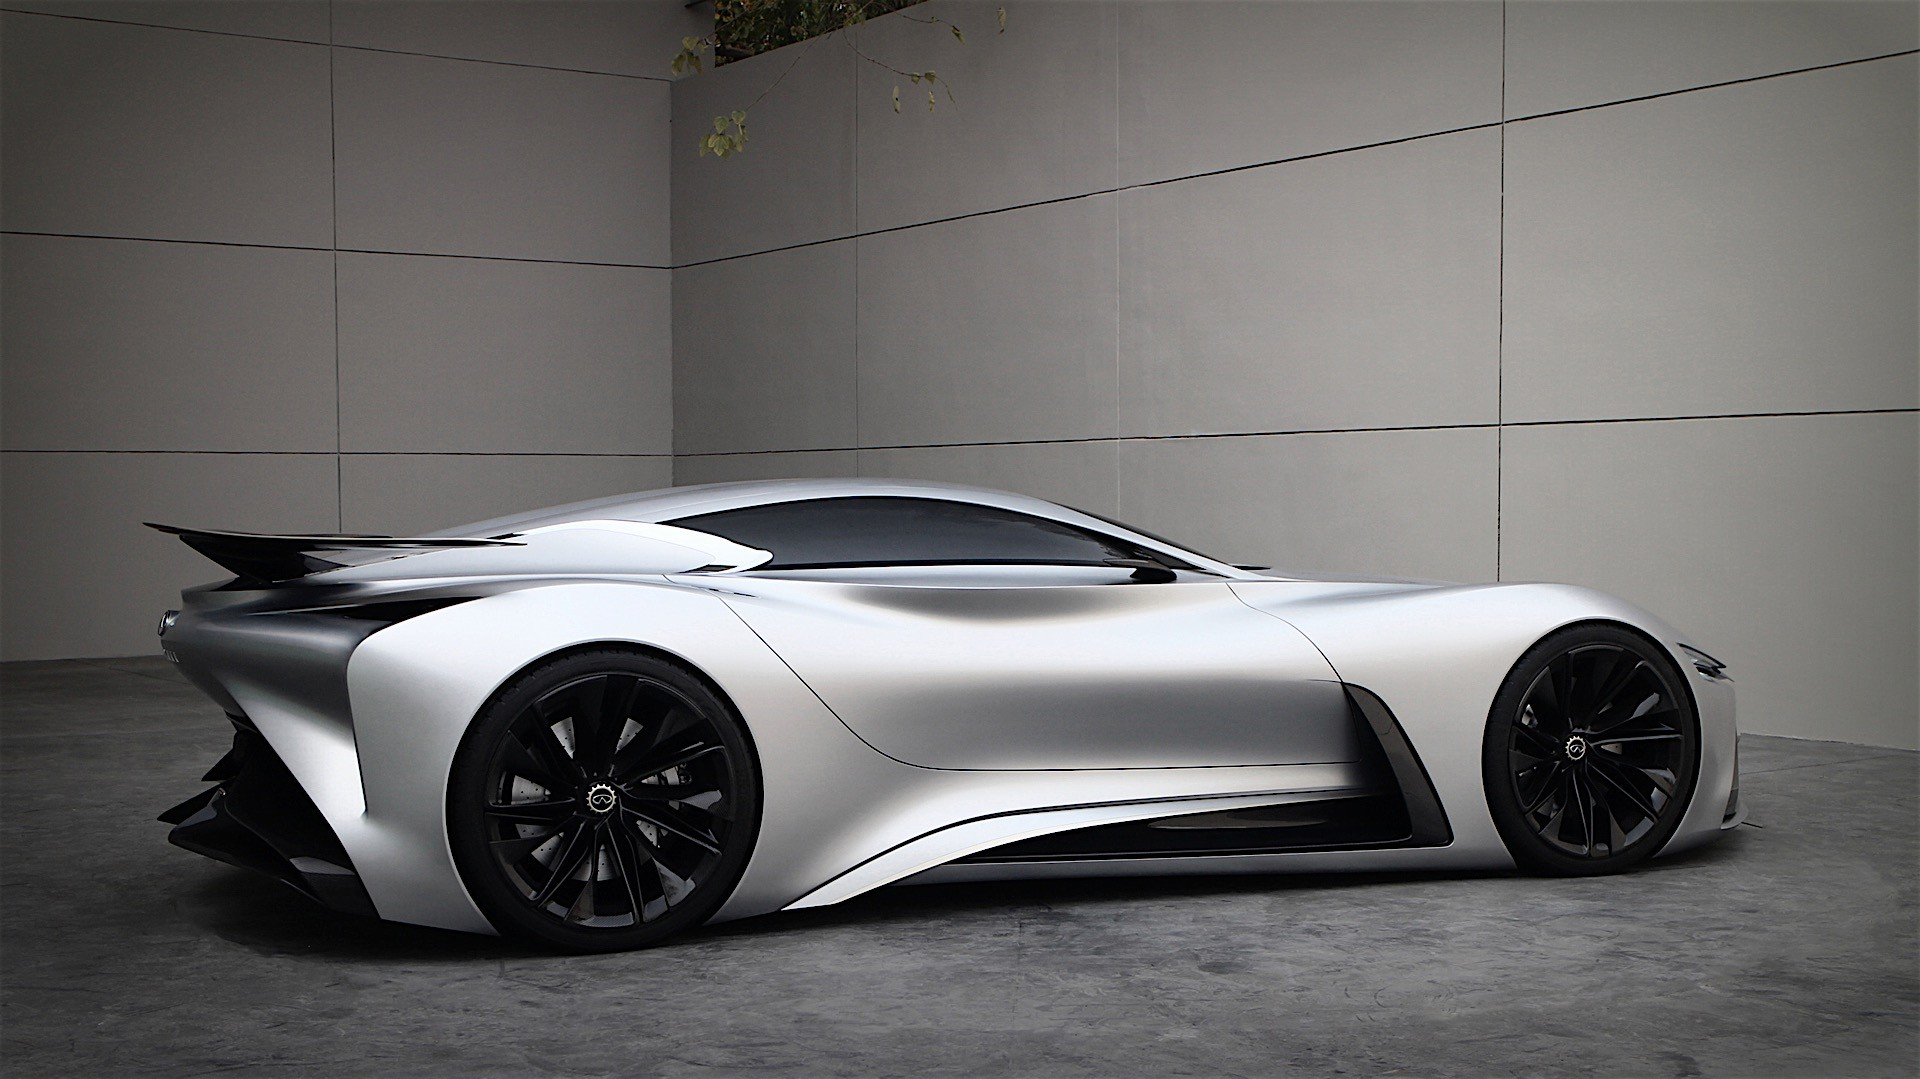 Infiniti Concept Vision Gran Turismo Available For Download Starting Today on New 3d Racing Car Games